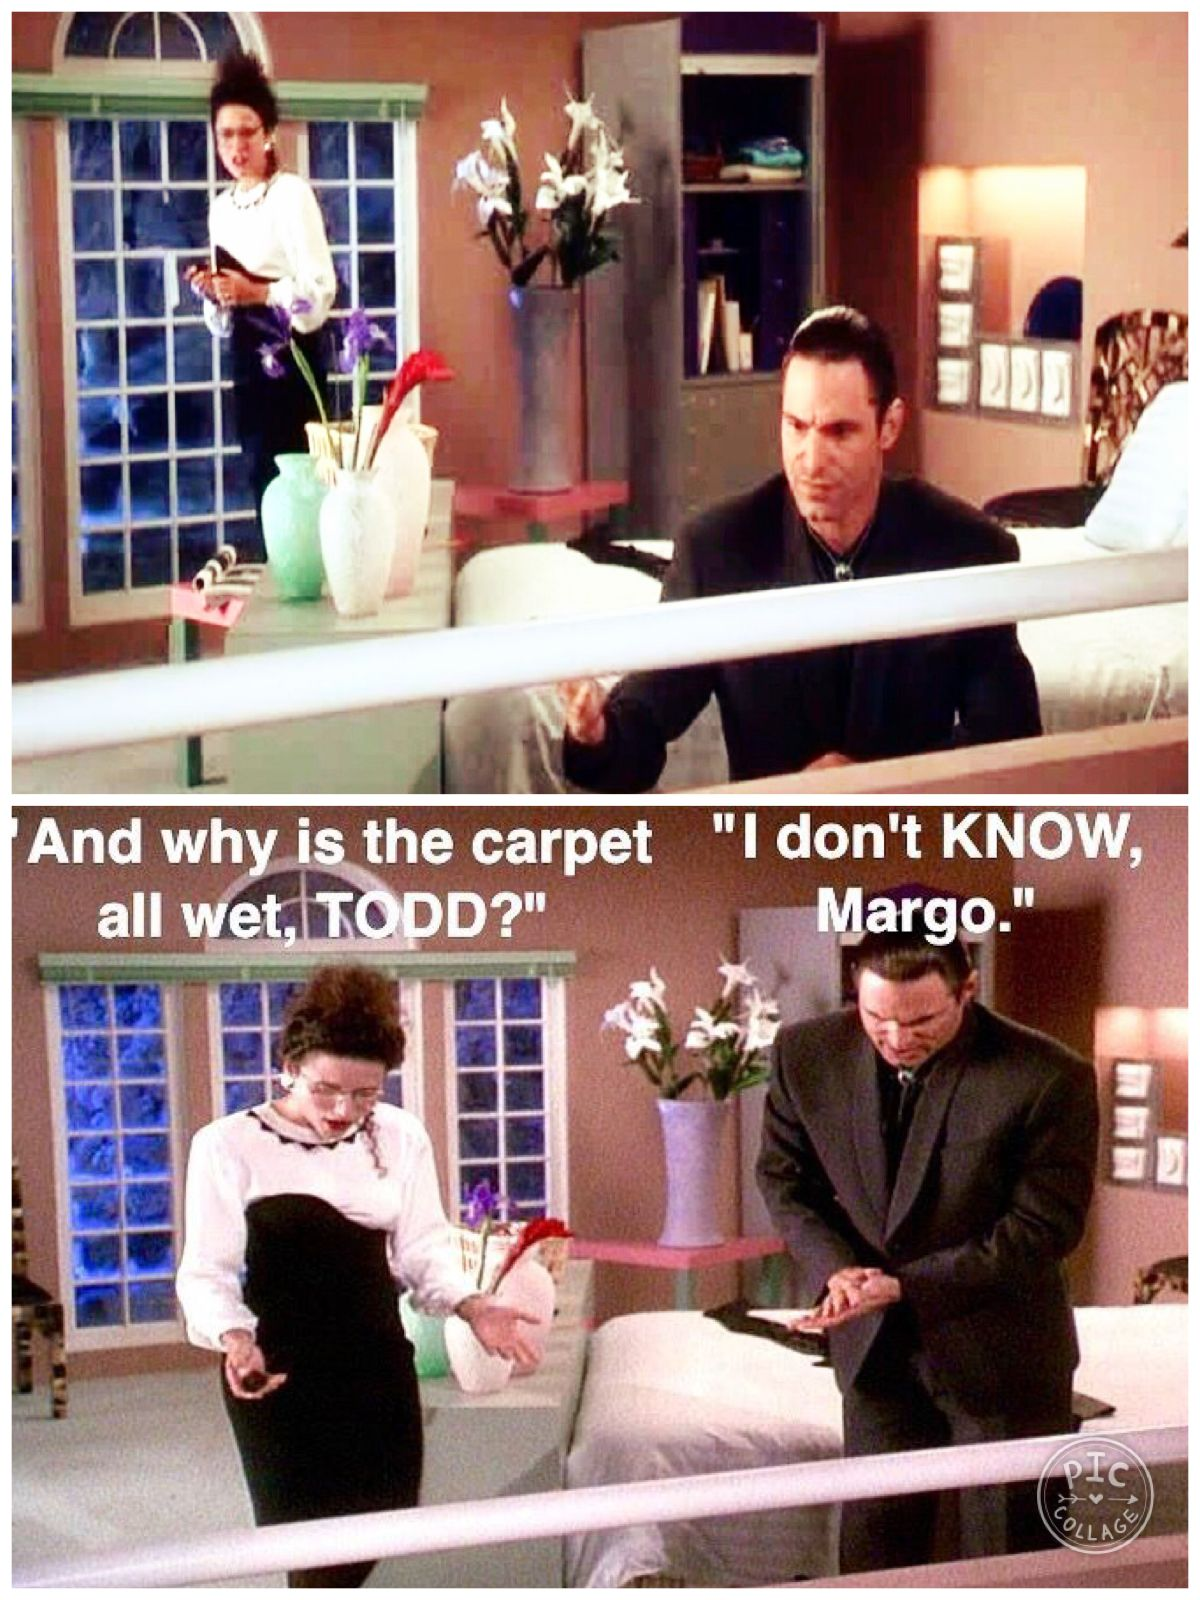 Christmas Vacation (1989) MARGO And why is the carpet